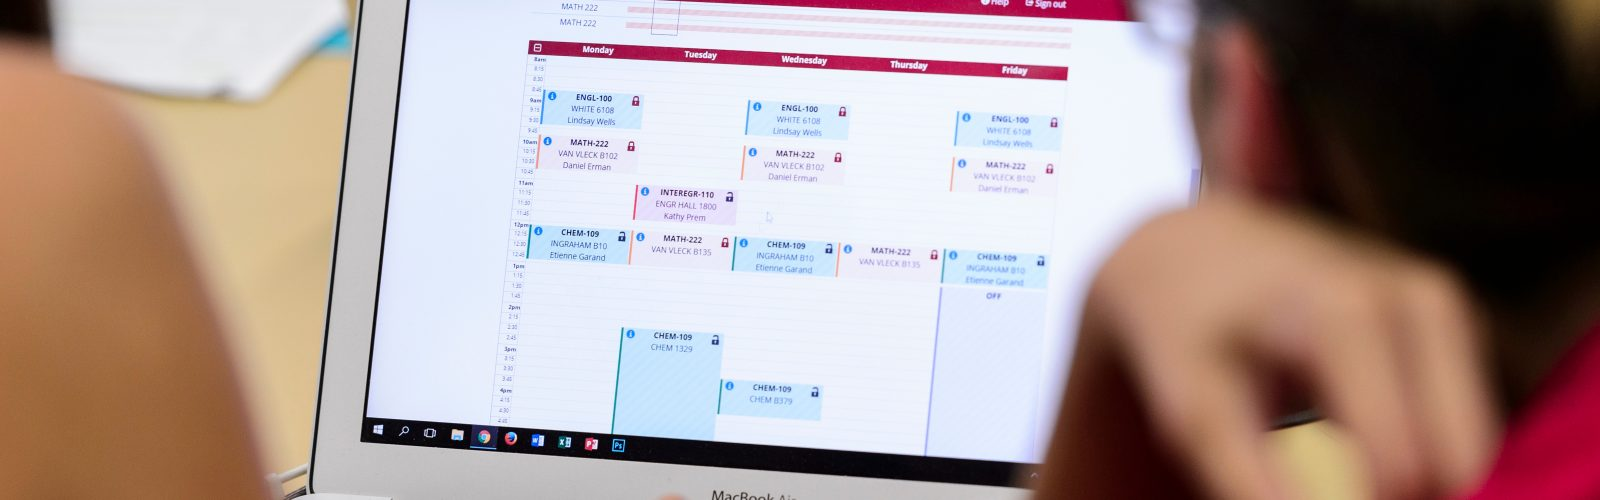 course schedule on computer